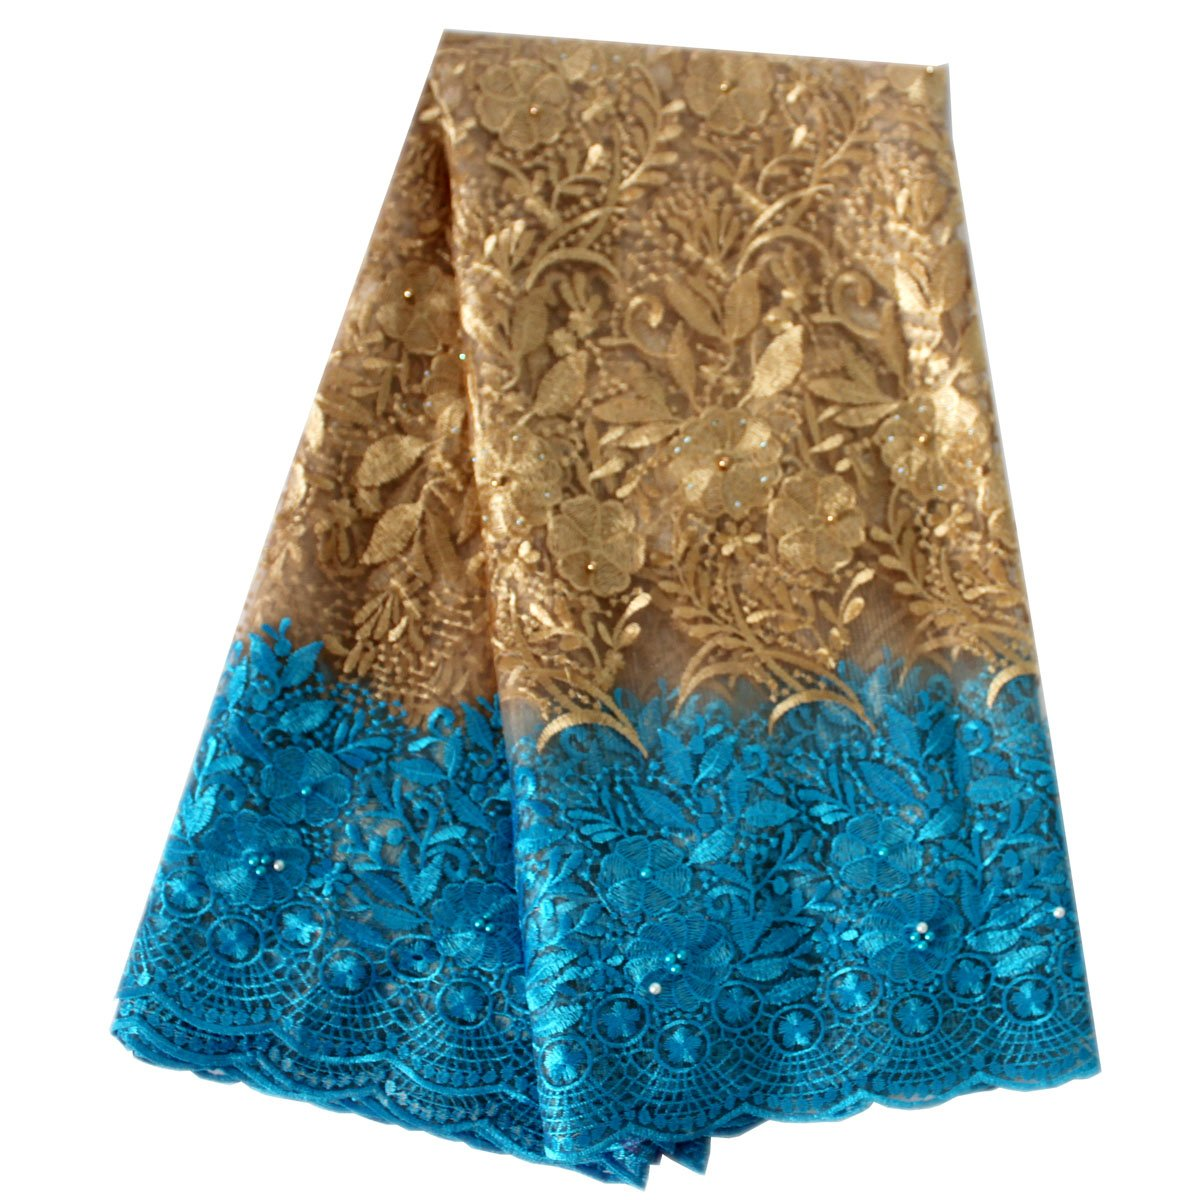 Lacerain 5 Yards African Lace Fabric Embroidered Lace Fabric African Embroidery Material Wedding Dress Shirt Skirt (Blue and Yellow)